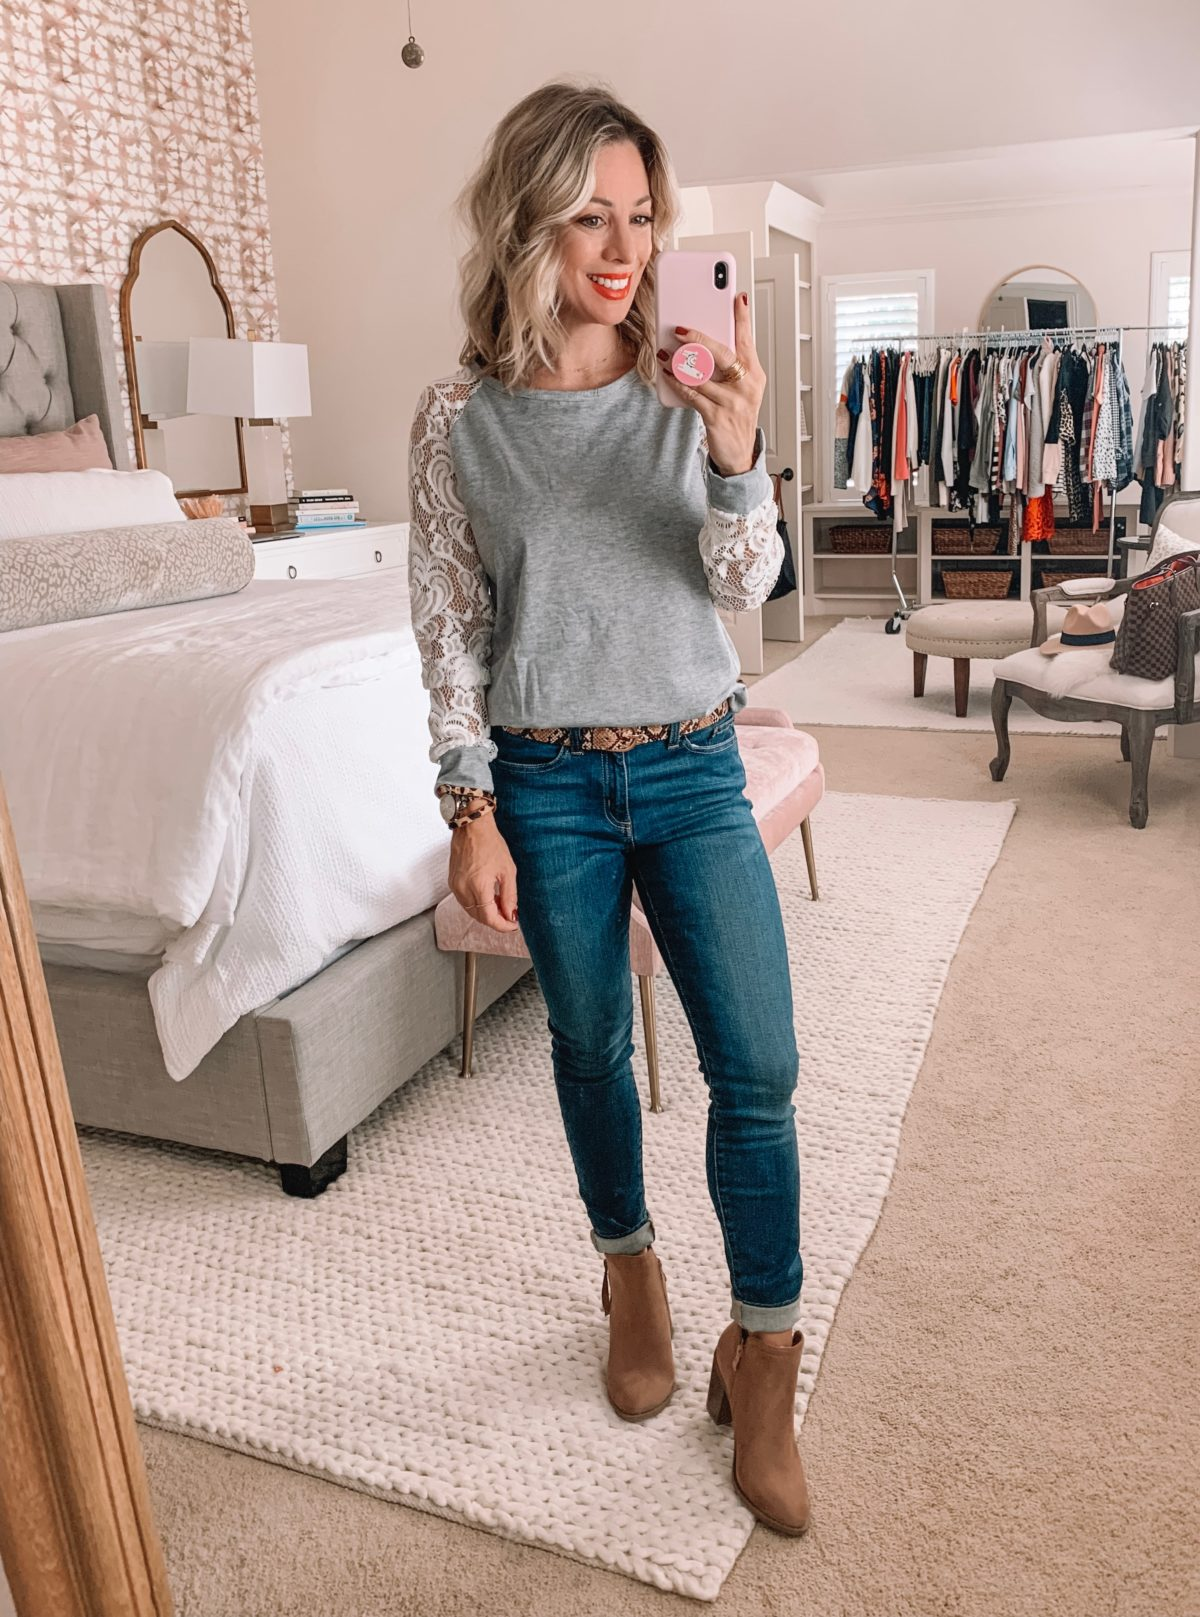 Amazon Prime Fashion- Grey Top and Jeans